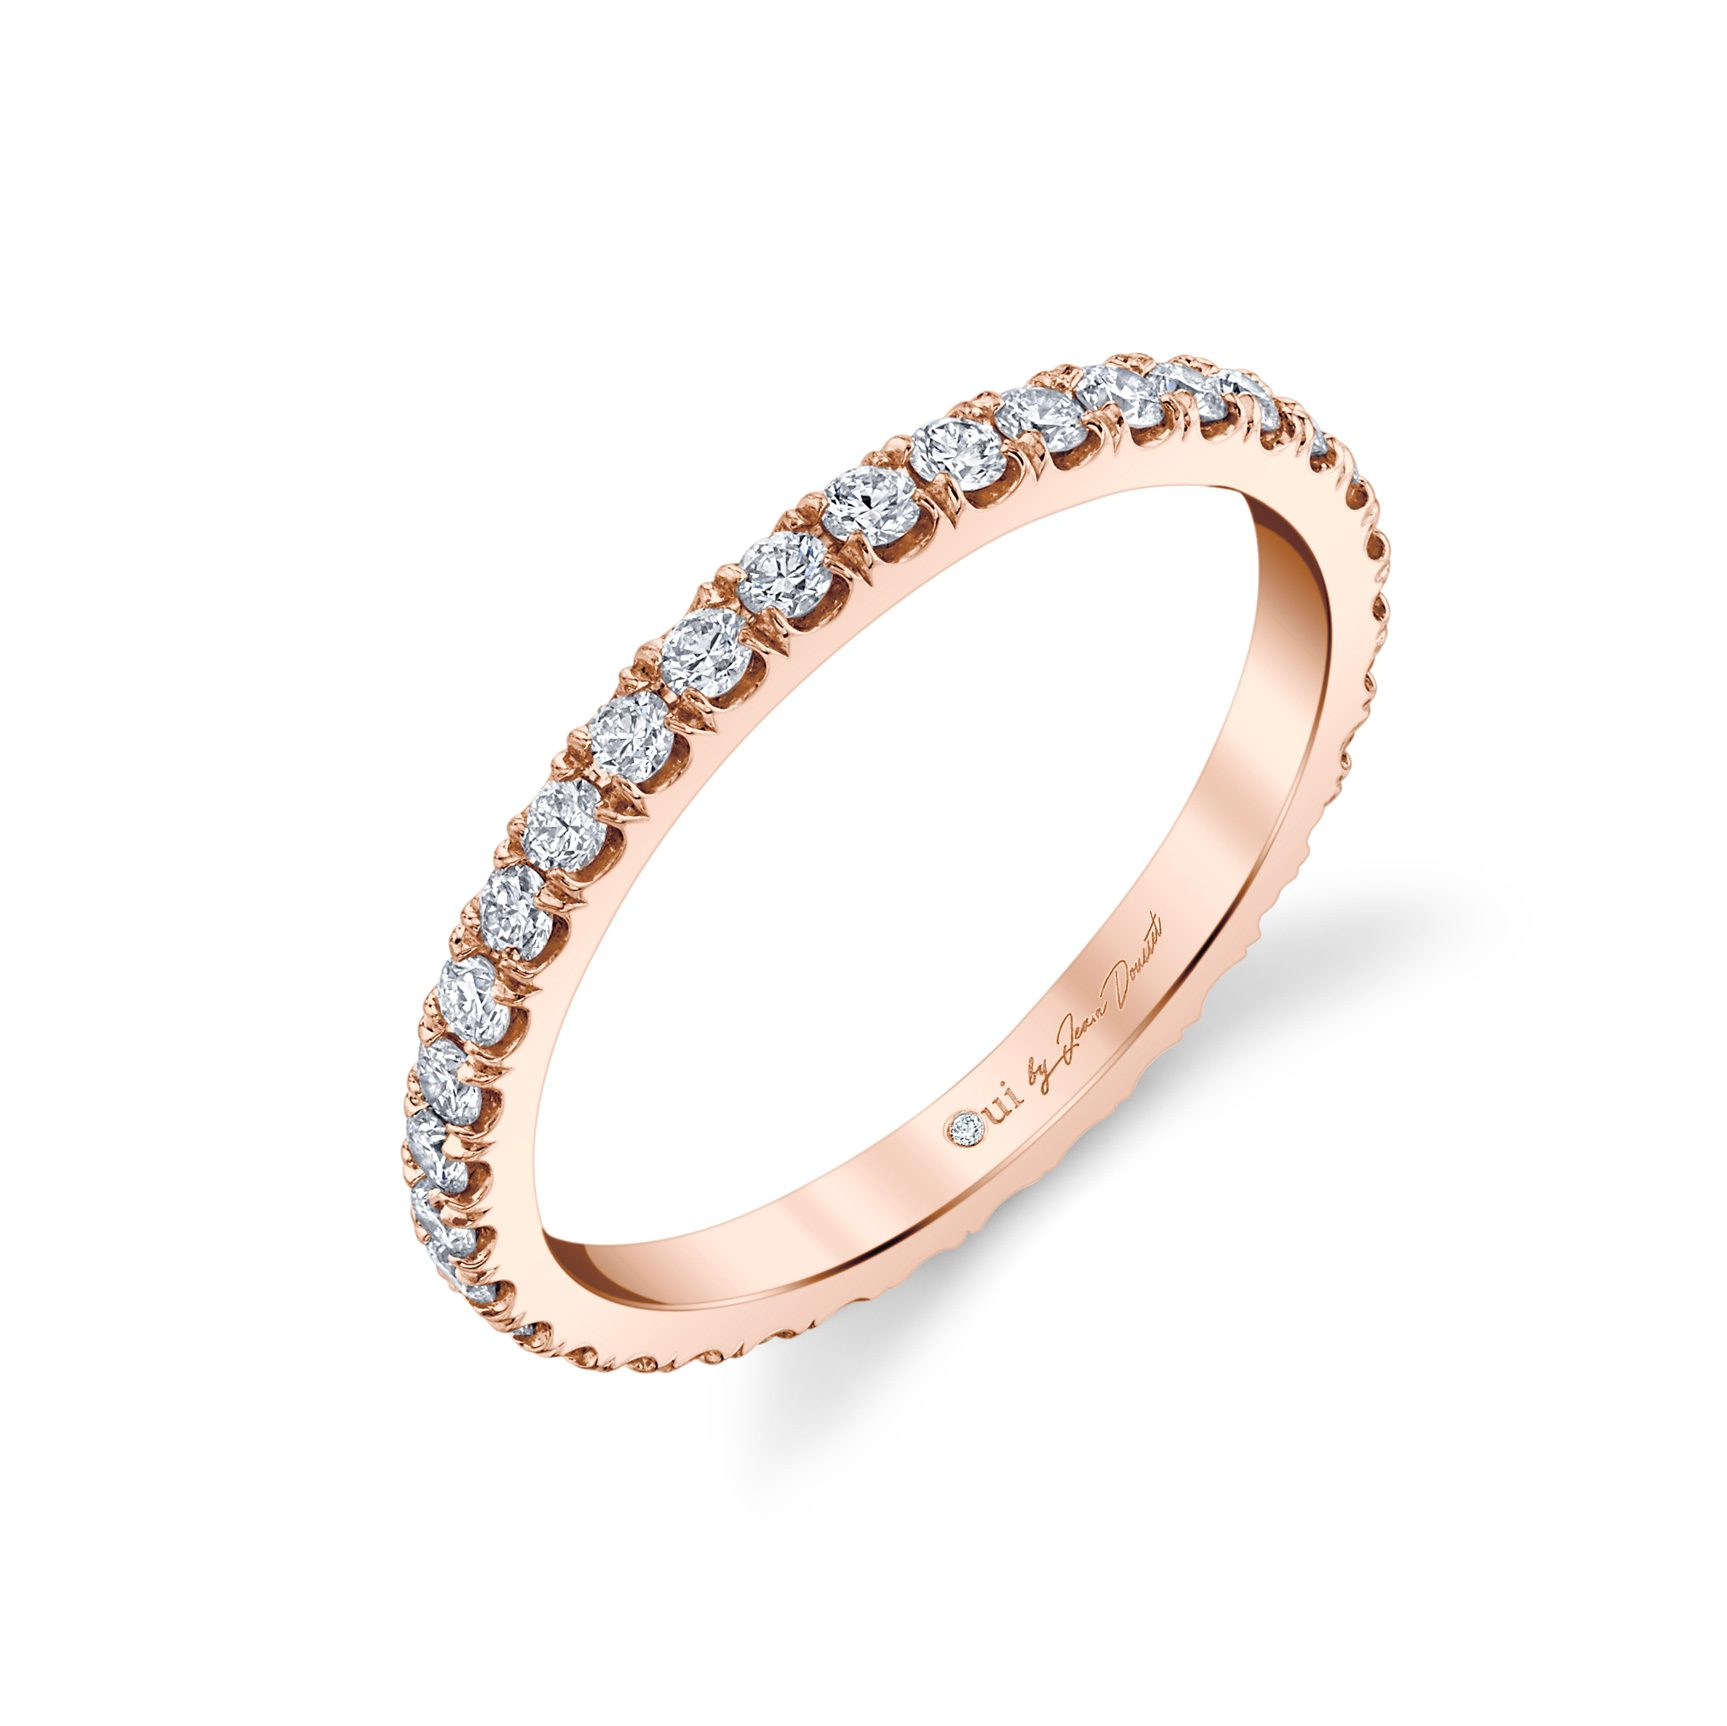 Eloise Women's Wedding Band 18k Rose Gold Standing View by Oui by Jean Dousset